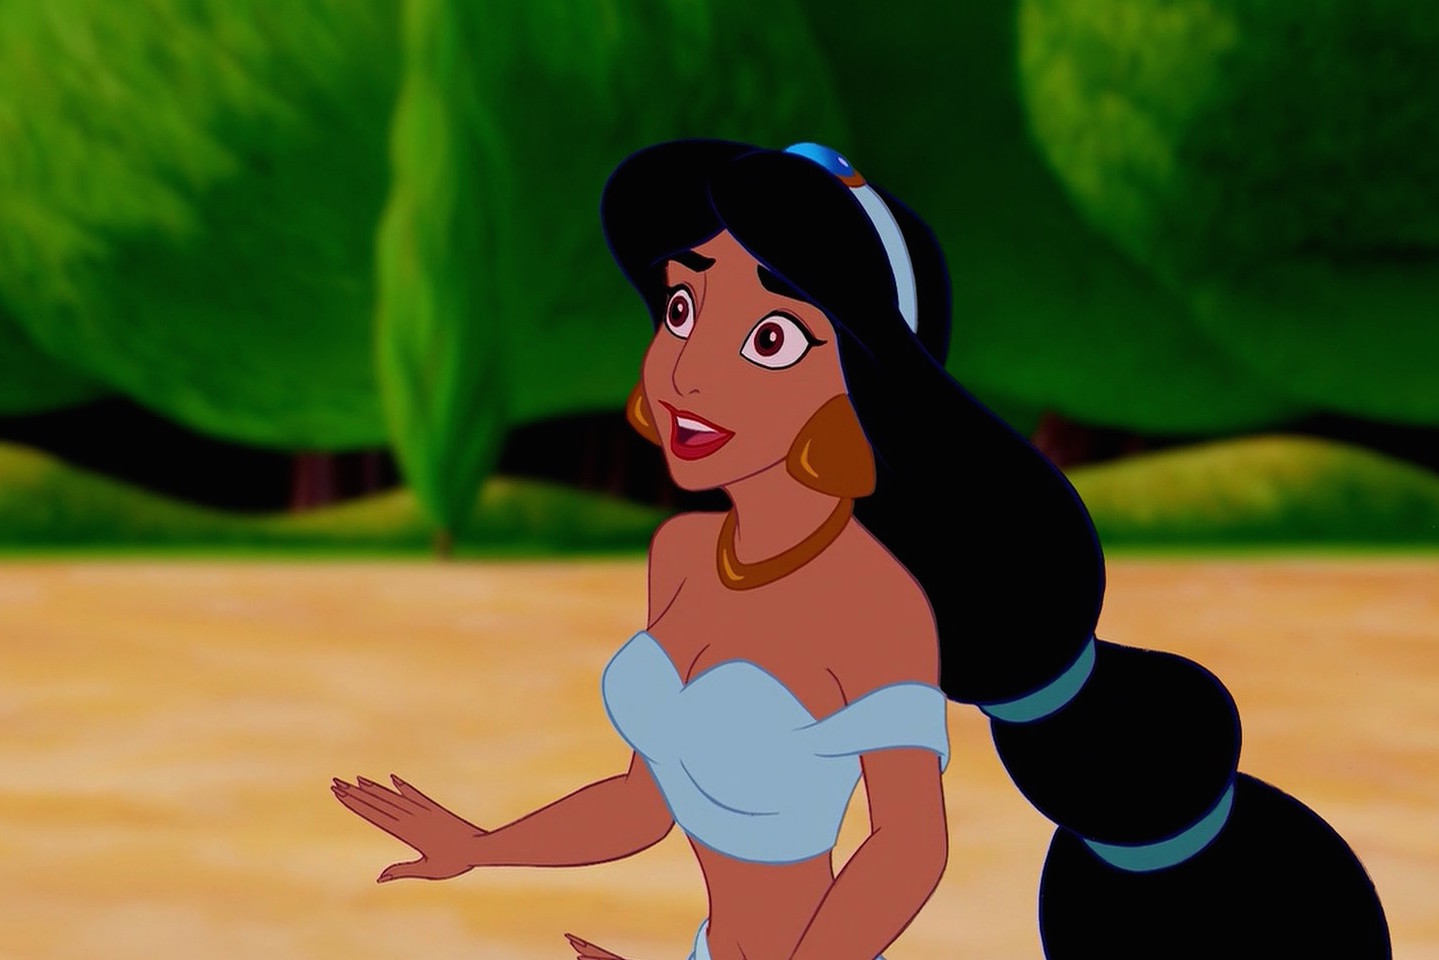 This woman looks like an irl princess jasmine the internet is understandably freaking out - Princesse jasmine disney ...